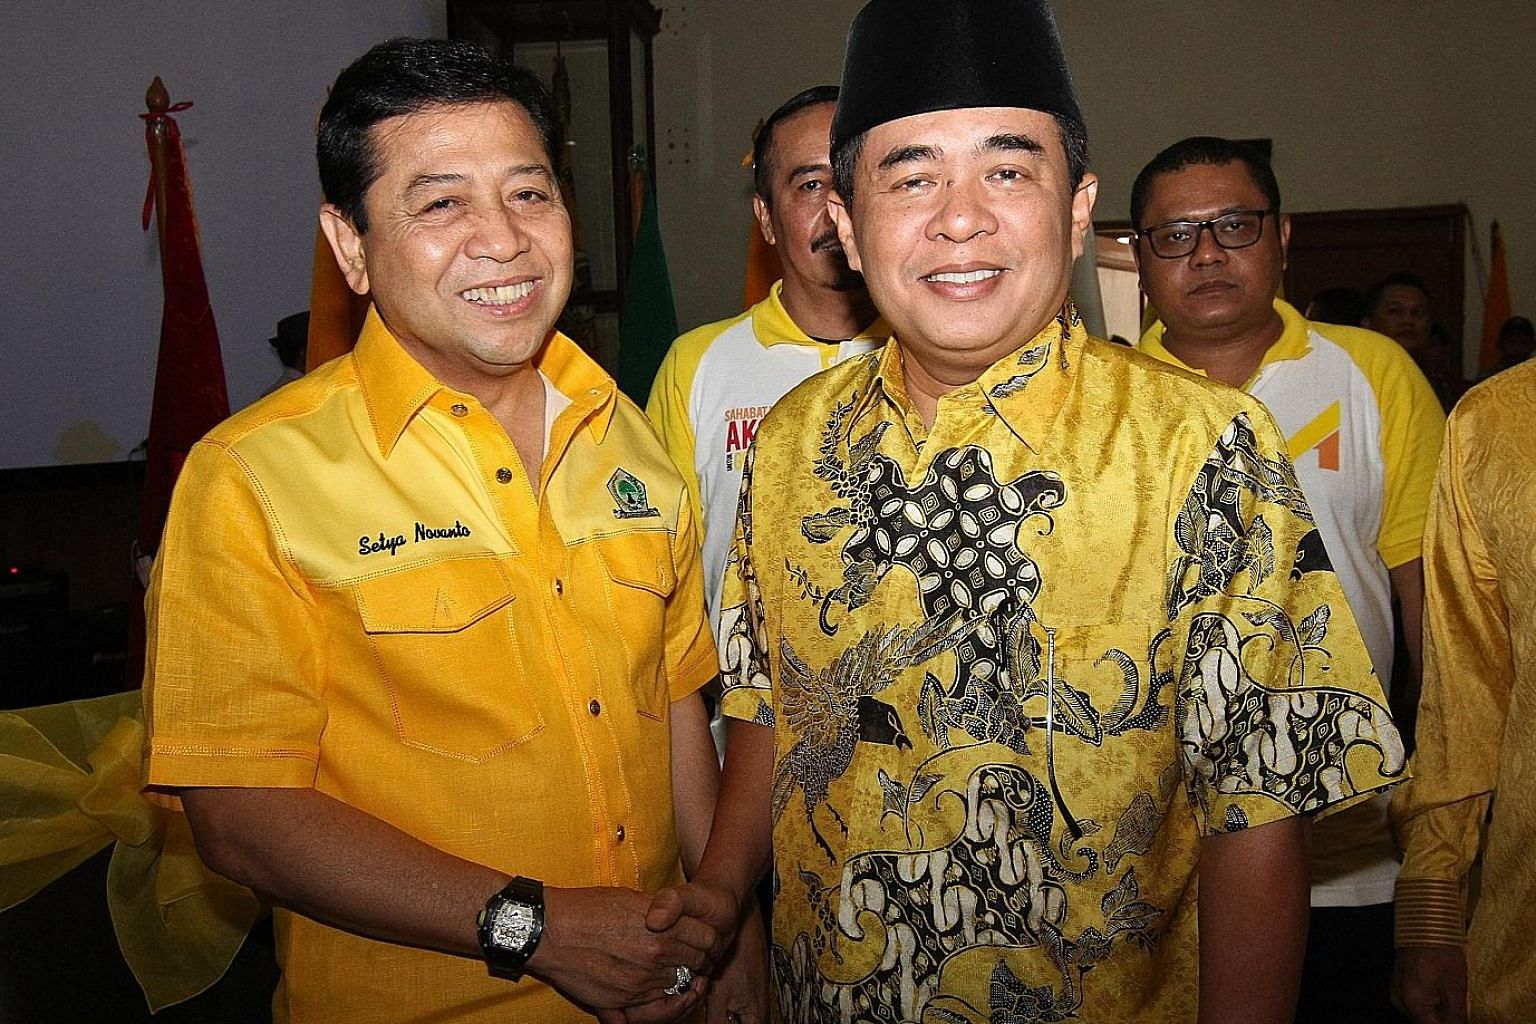 Mr Setya Novanto (at left) and House Speaker Ade Komarudin at the Golkar party headquarters in Jakarta last Saturday. Both men are among eight members campaigning for the post of Golkar chief, and experts see the contest as a straight fight between t